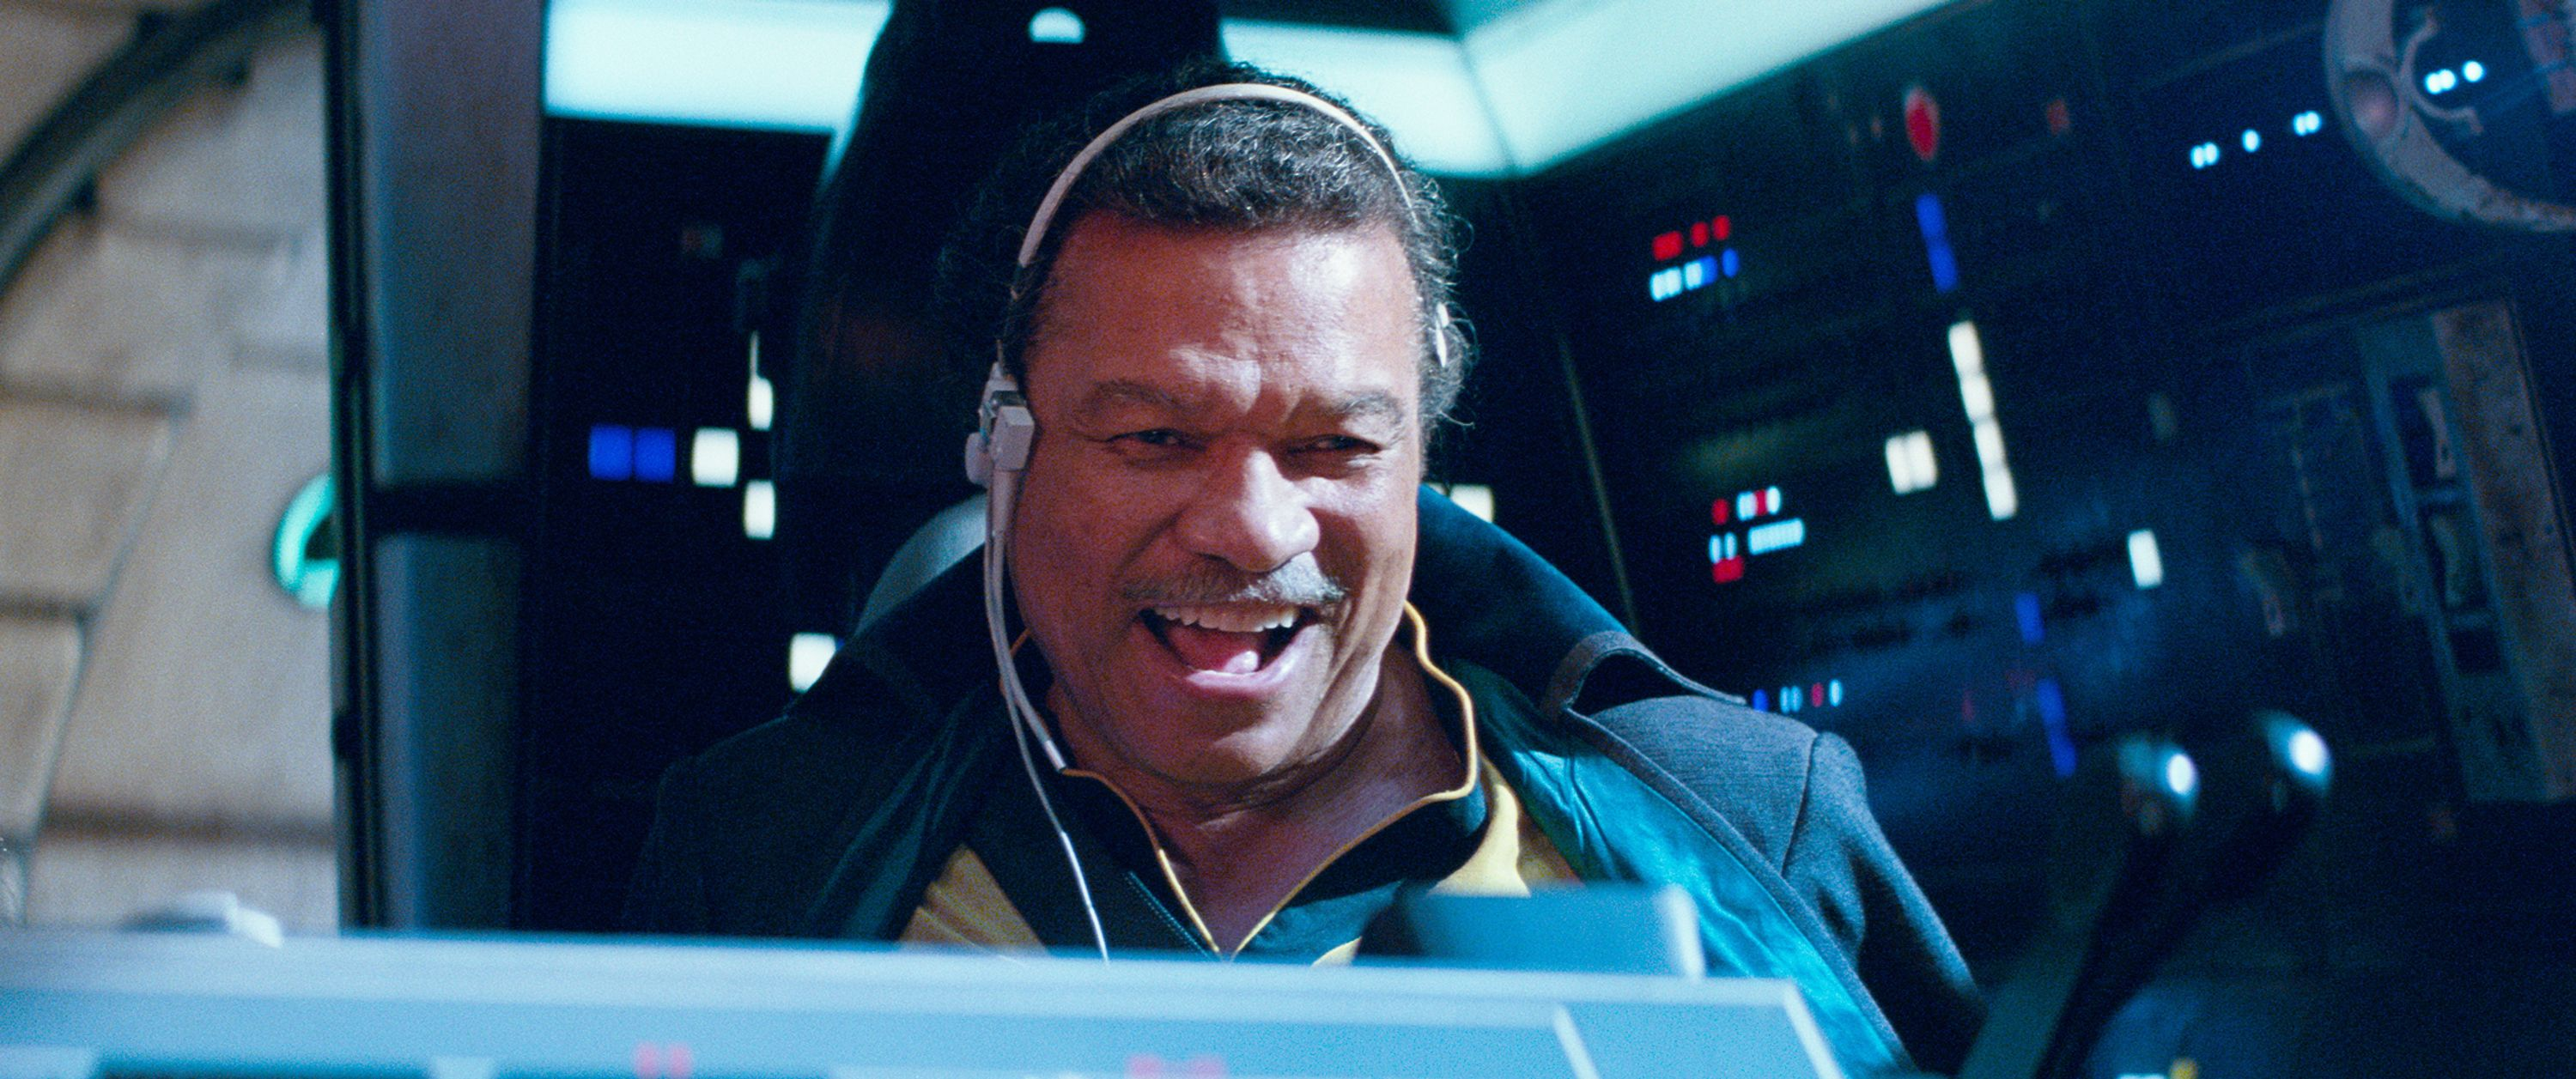 Lando Calrissian is back in Rise of Skywalker – here's what he's been up to since Return of the Jedi